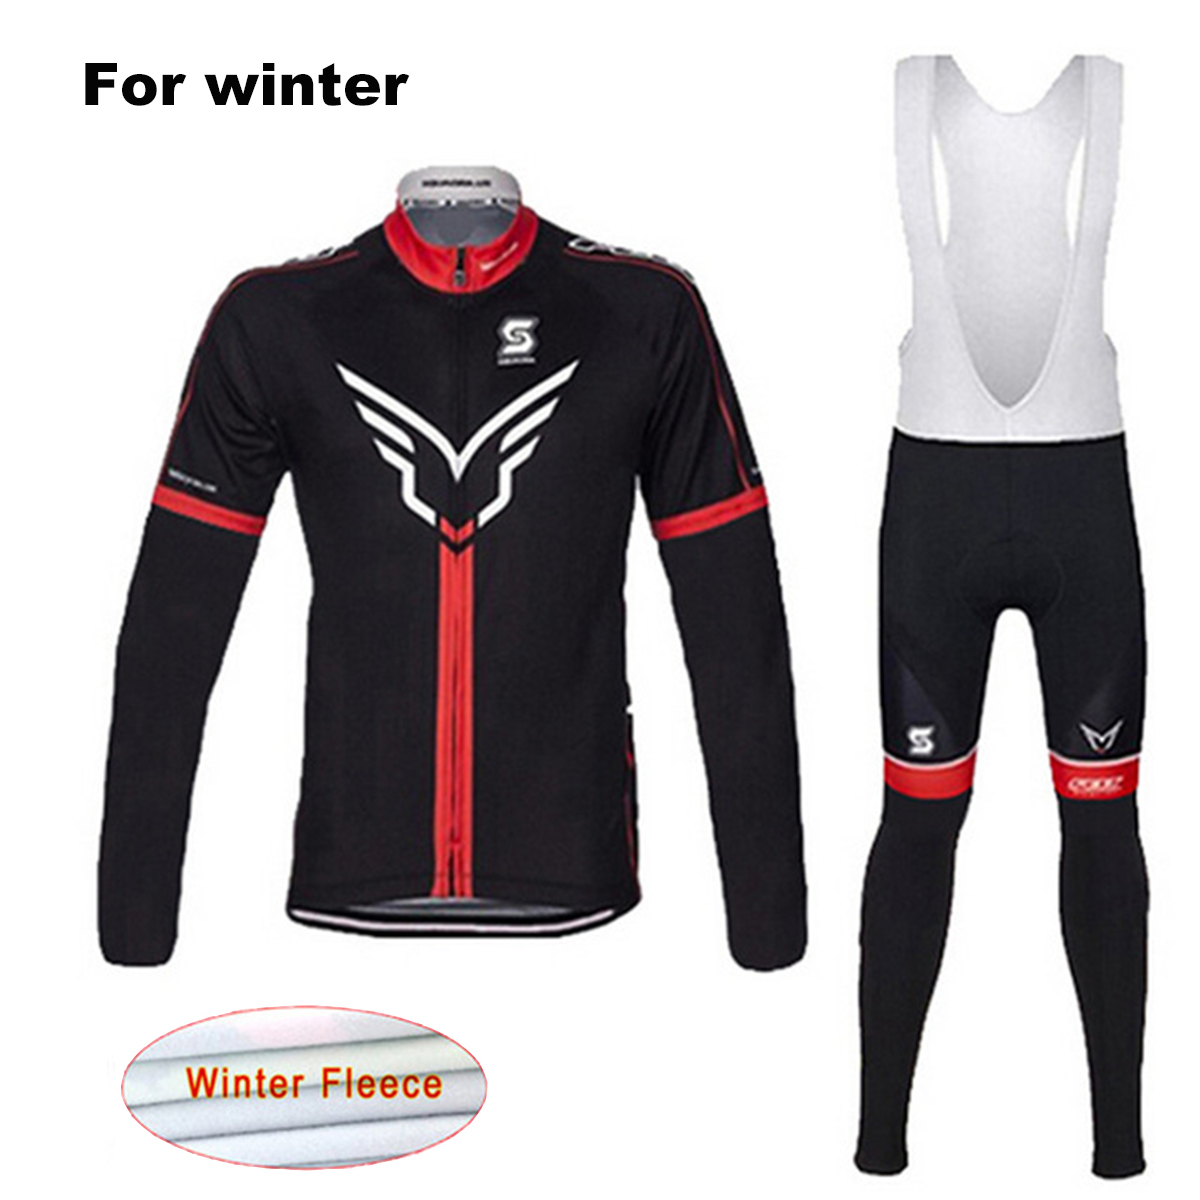 Thermal Fleece Winter FELT Team Cycling Jersey Set Long Sleeve Ropa Ciclismo Invierno Maillot Outdoor Sport Coat Bicycle Clothes